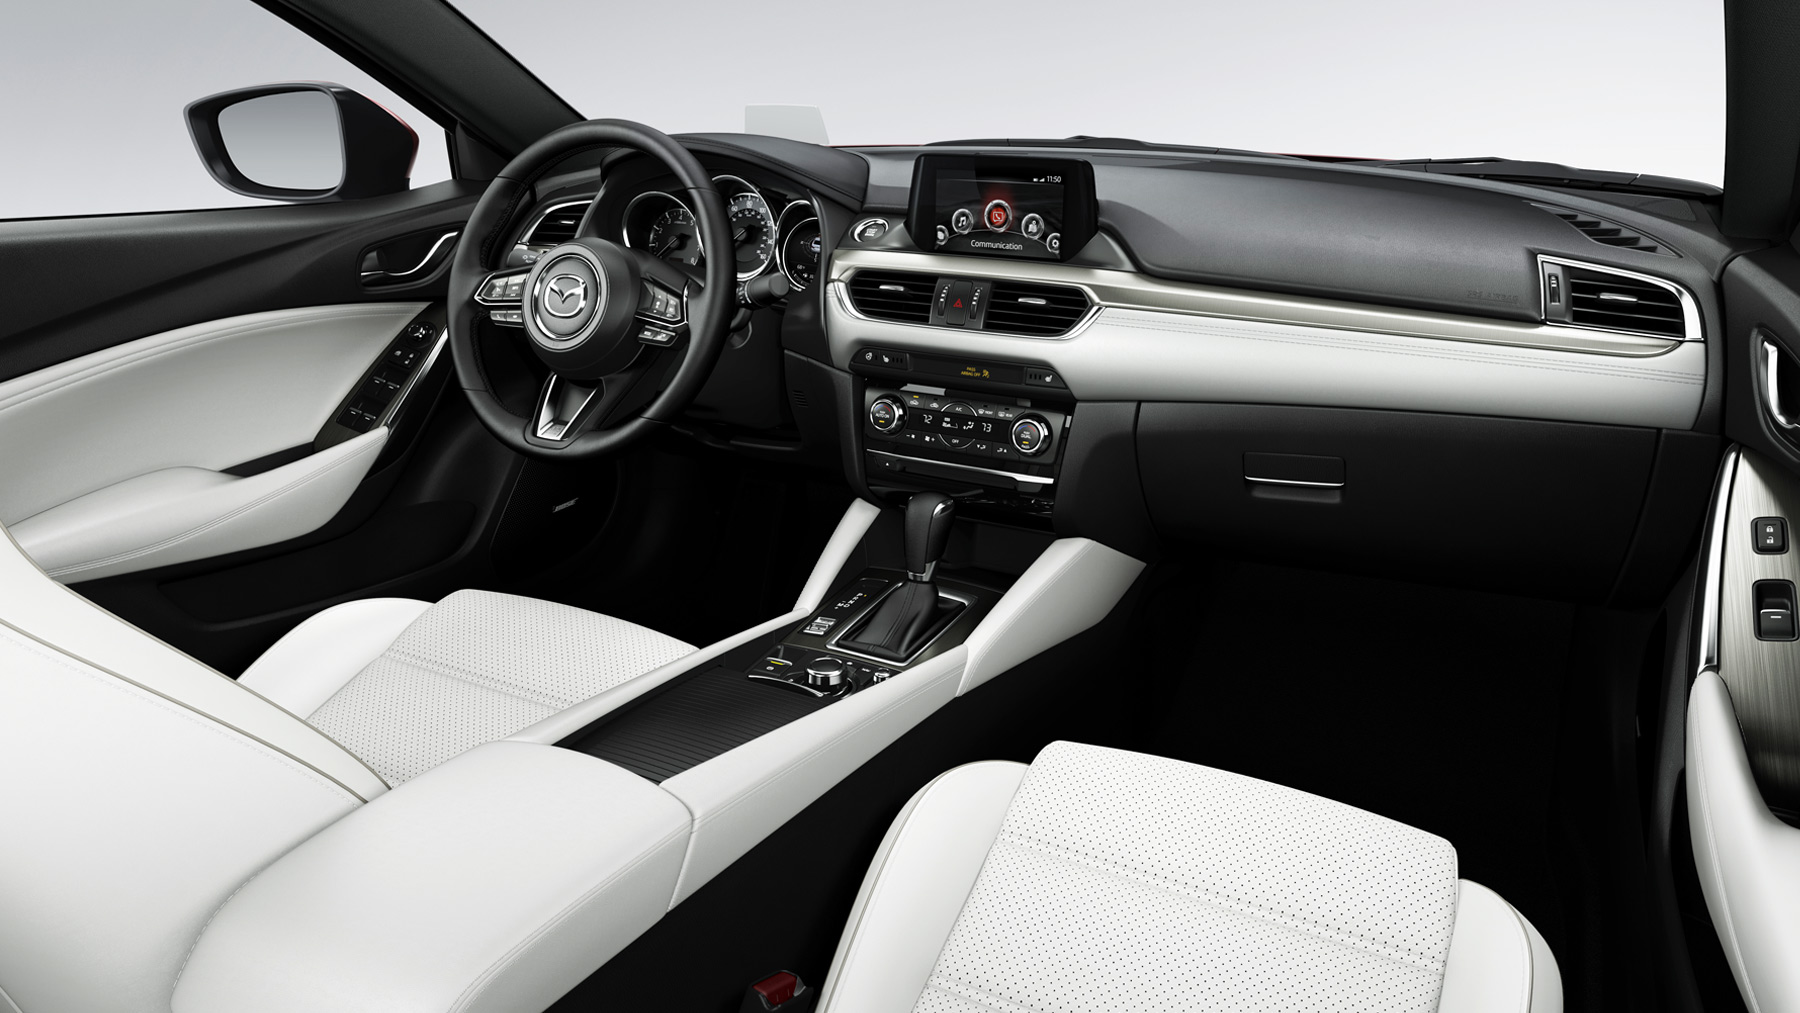 Modern amenities await you inside the cabin of the Mazda6